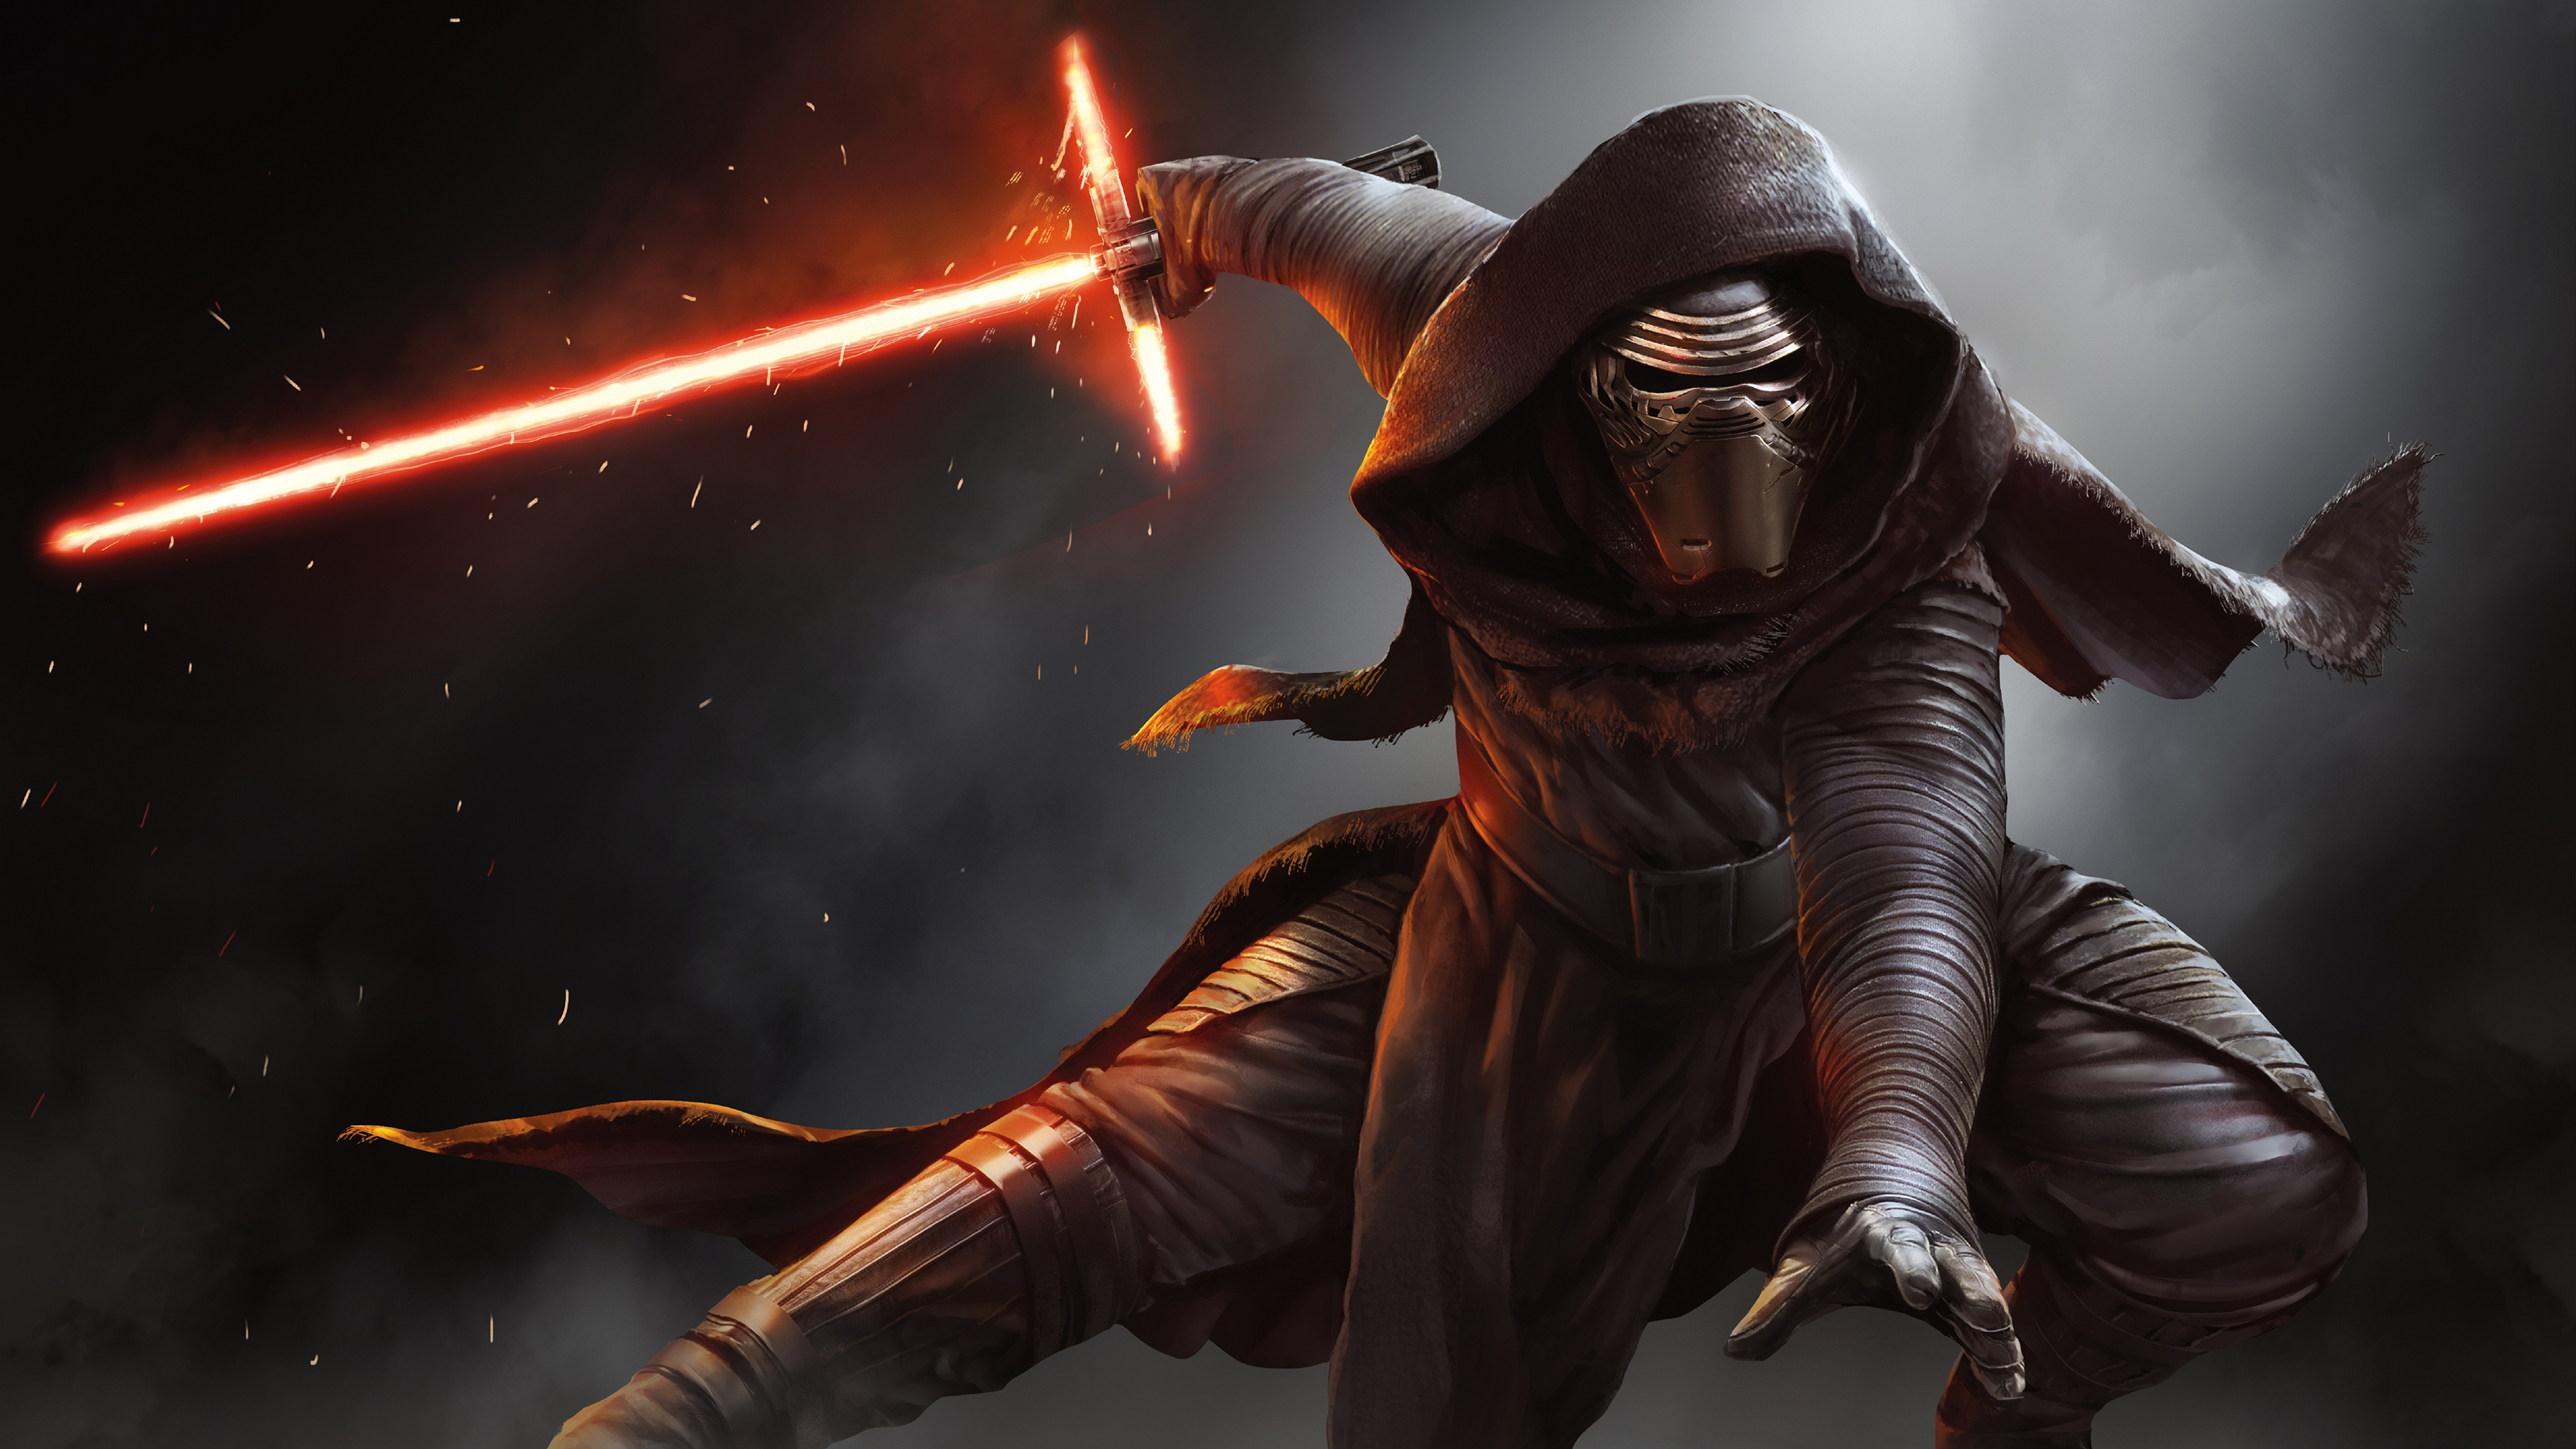 Star Wars The Force Awakens Wallpapers Awesome Wallpapers 3840x2160